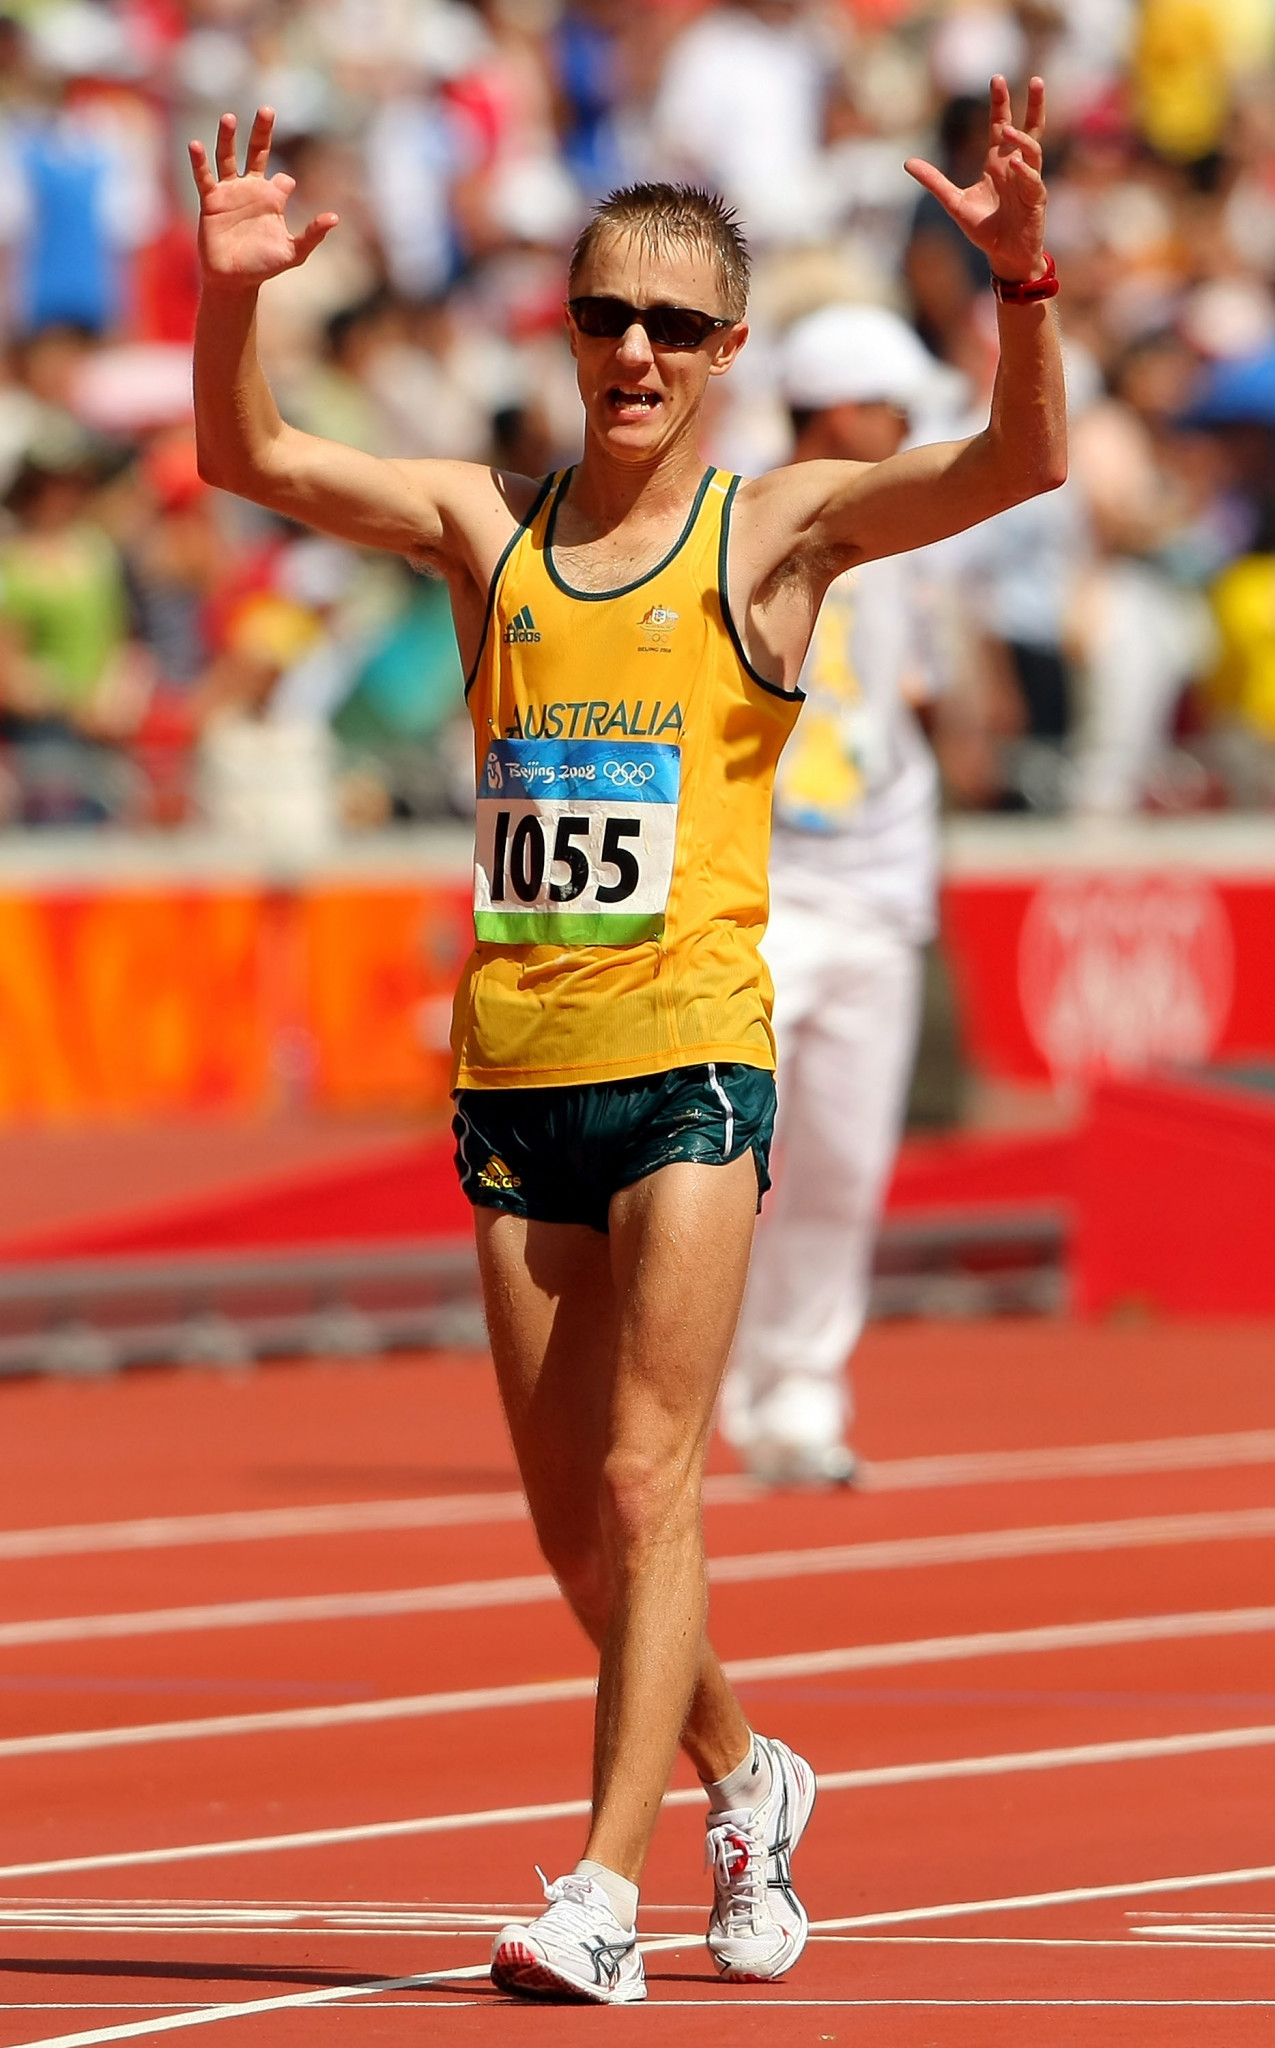 Jared Tallent won two Olympic medals at Beijing 2008, including a bronze in the 20km walk, making him the first Australian male to achieve the feat for 104 years ©Getty Images